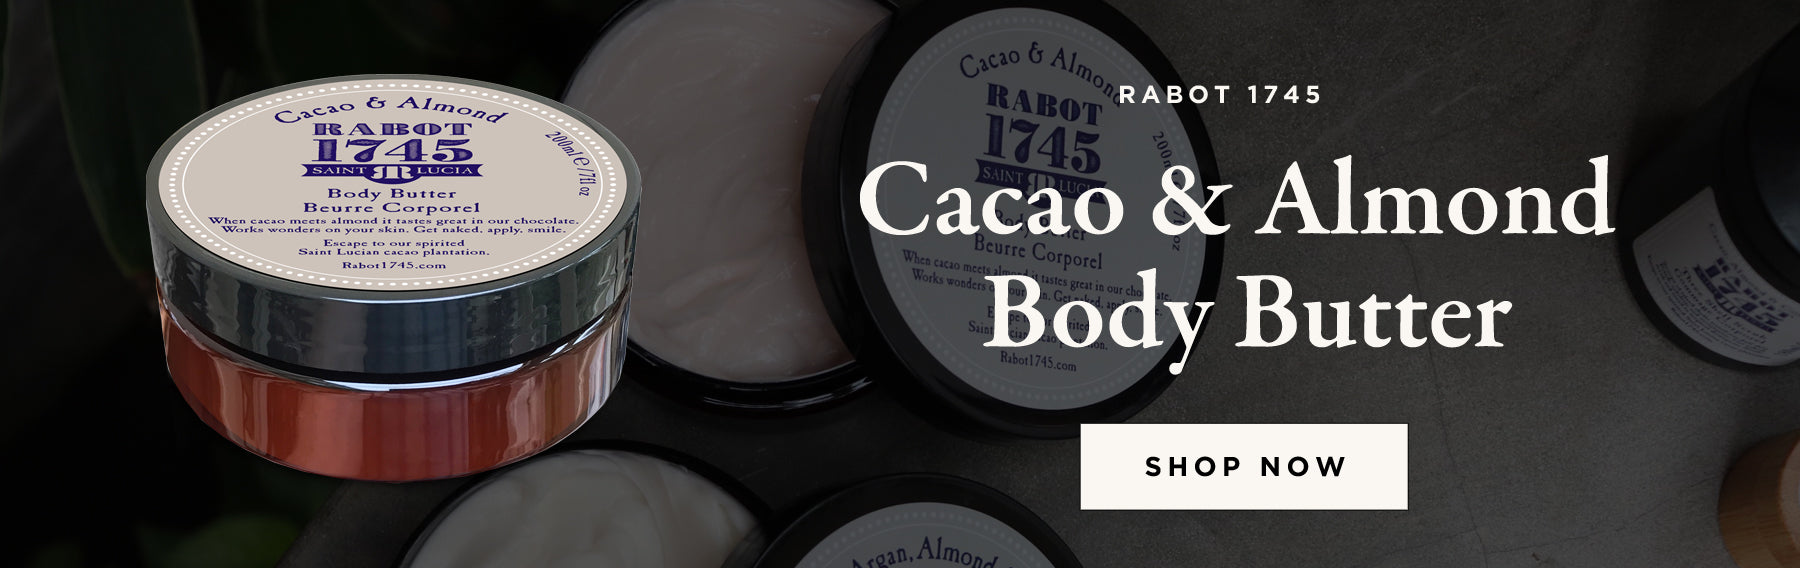 Cacao Almond Body Butter